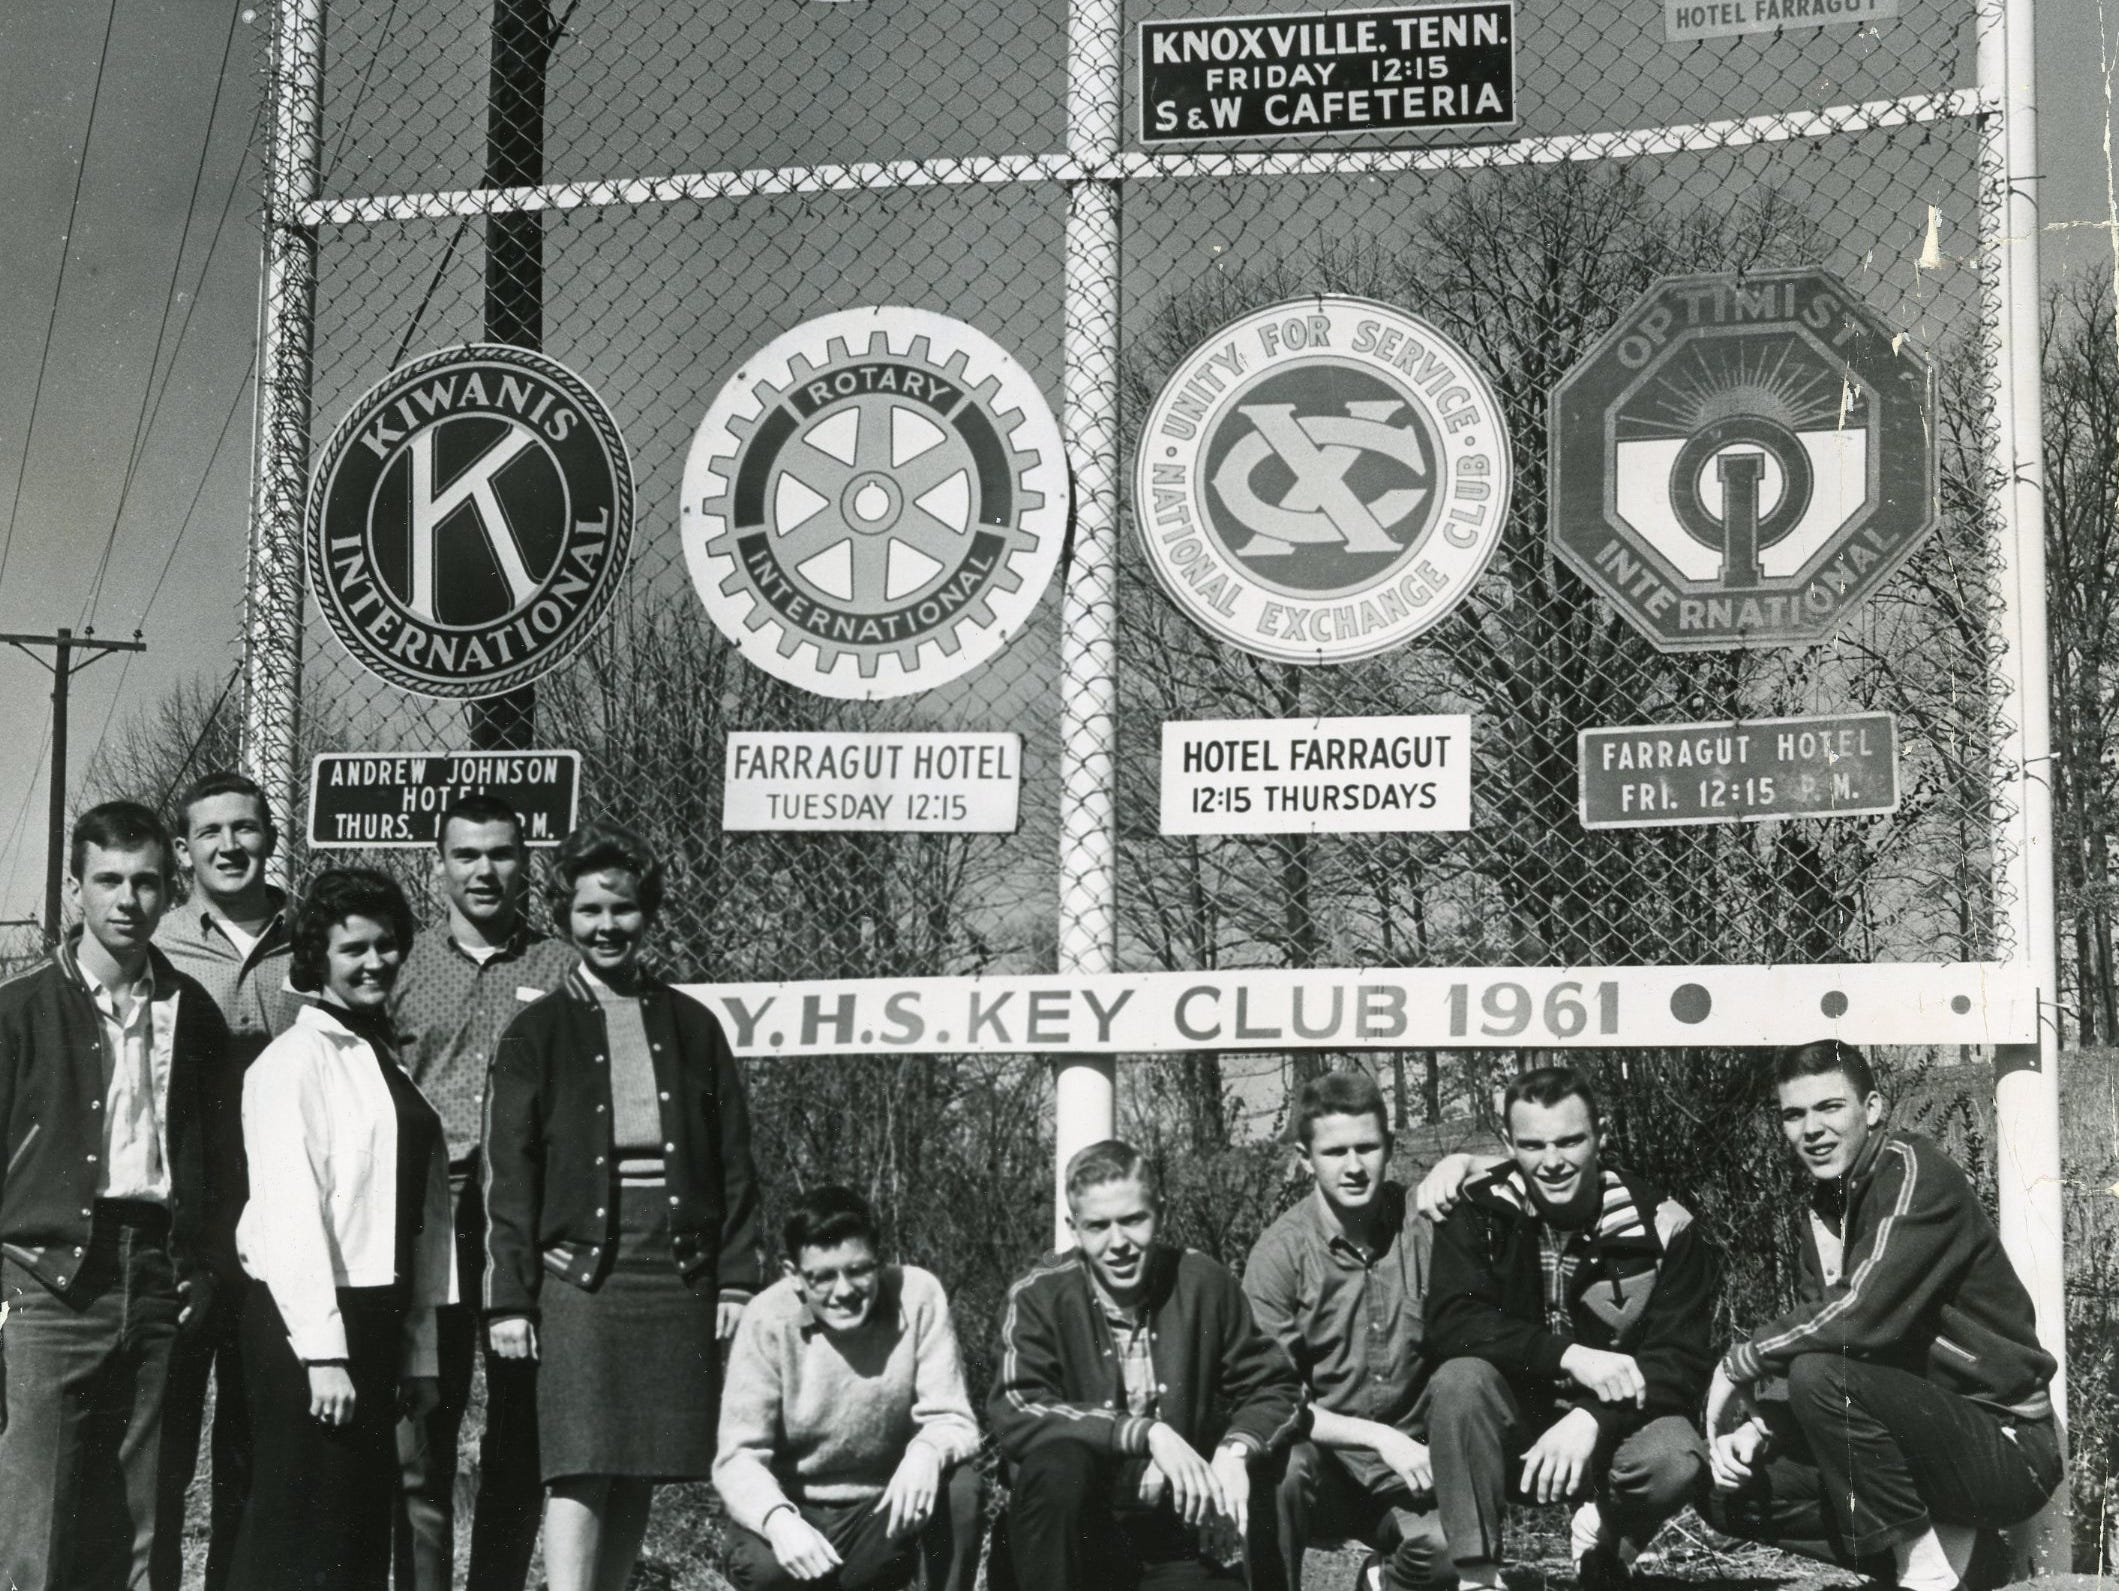 Young High Key Club members with their sign, February, 1961. Pictured are (front) Kent Campbell, Brenda Williams, Prissy Crisp, Dalton Townsend, Bill Abler, Bob Atkins, Bob Kidd, Clarence Walker; (back) Carl Galyon and Paul Davenport.